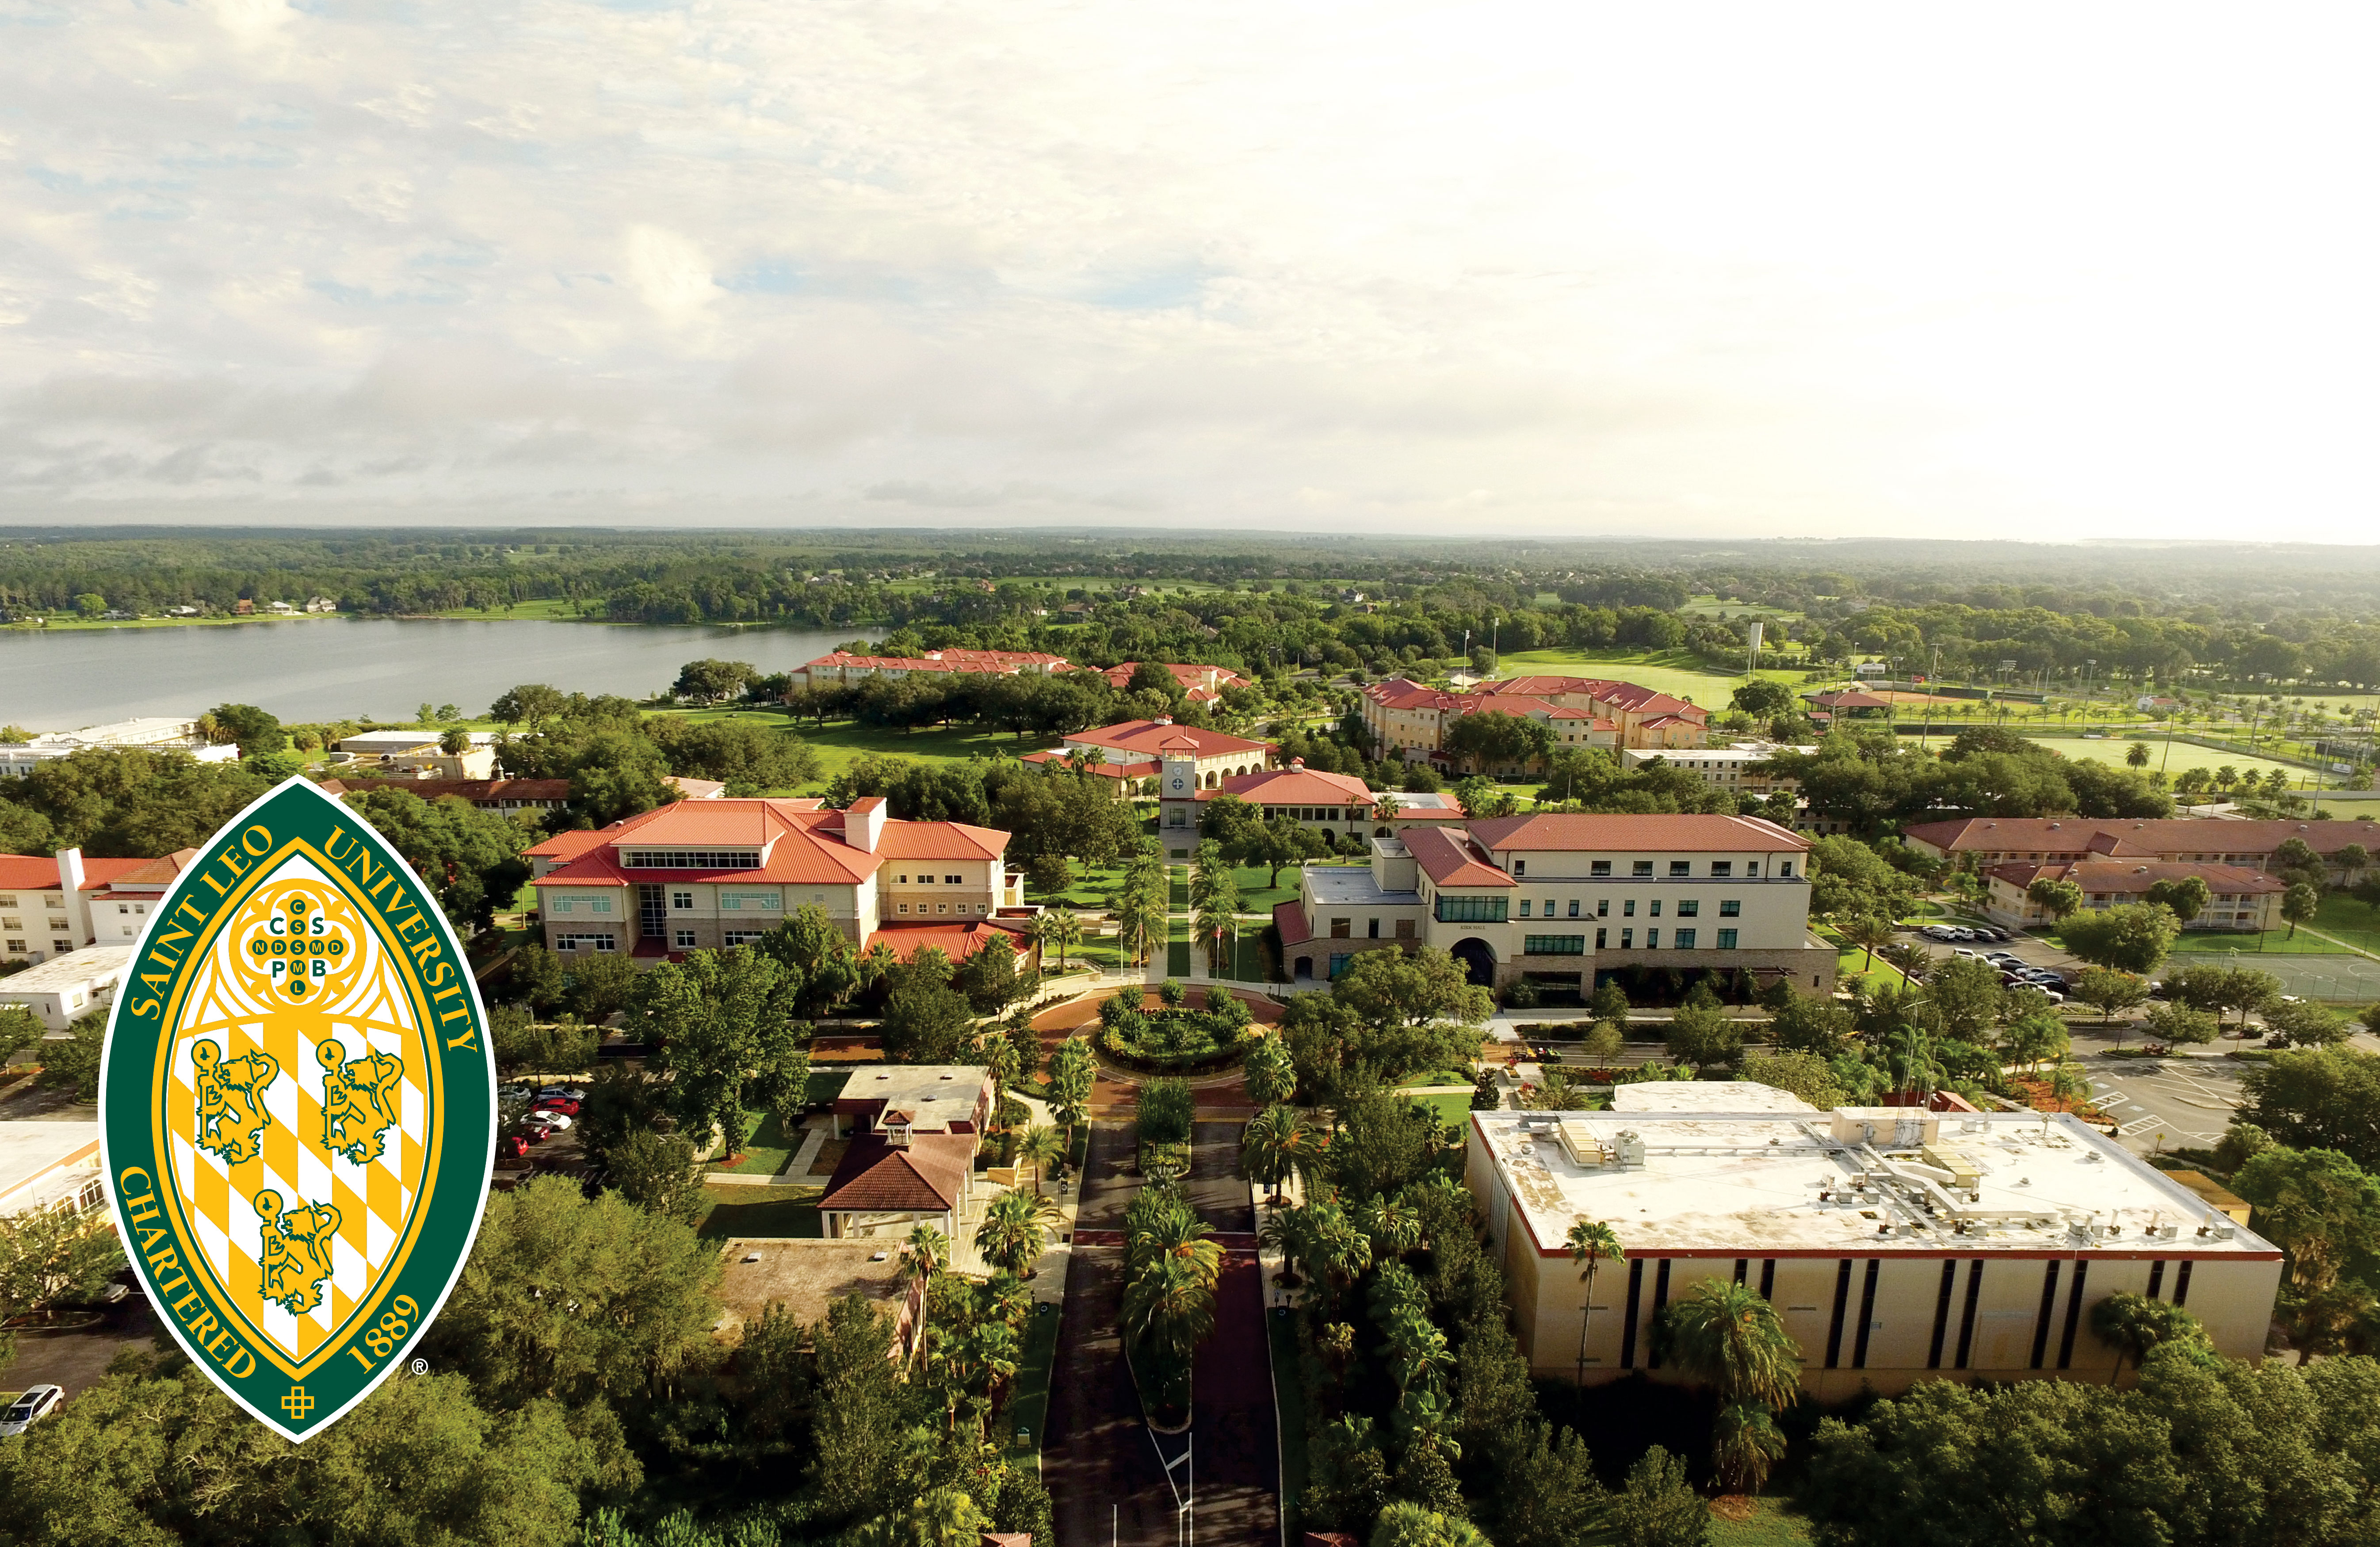 Renaissance 2021: A Look at the Future of Saint Leo University